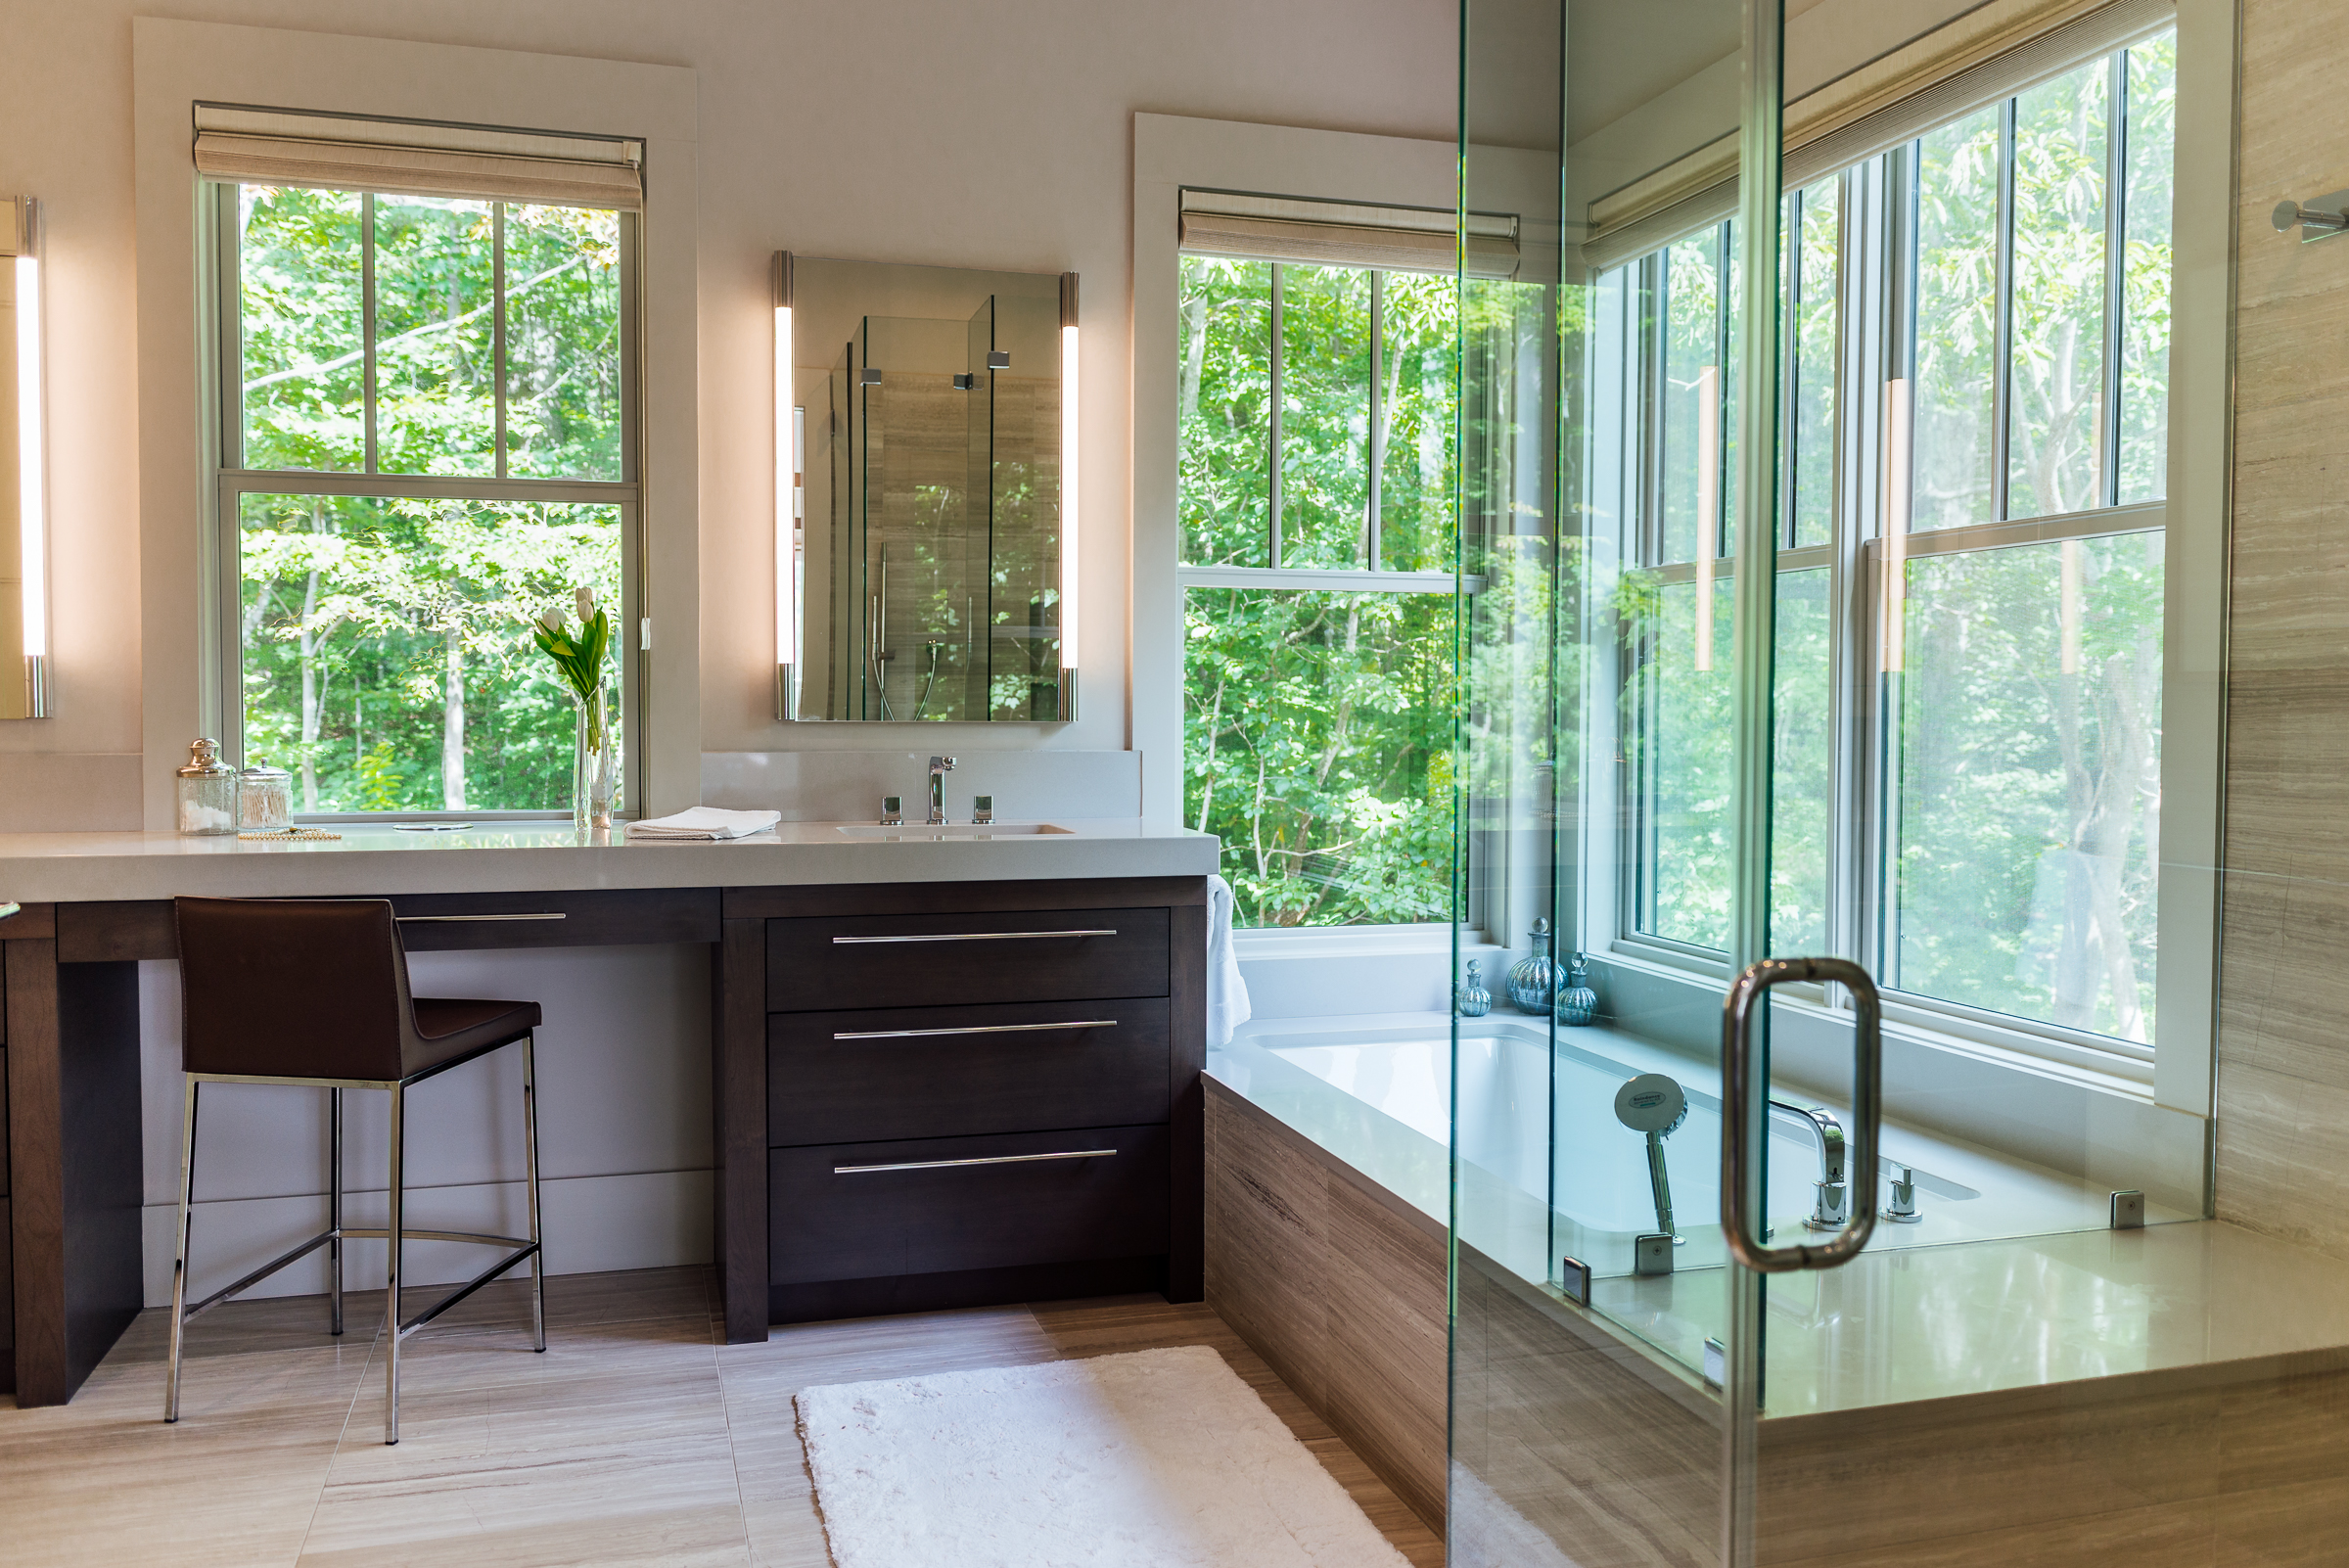 Another one of our custom homes also features an open vanity that could accommodate a wheelchair if necessary.